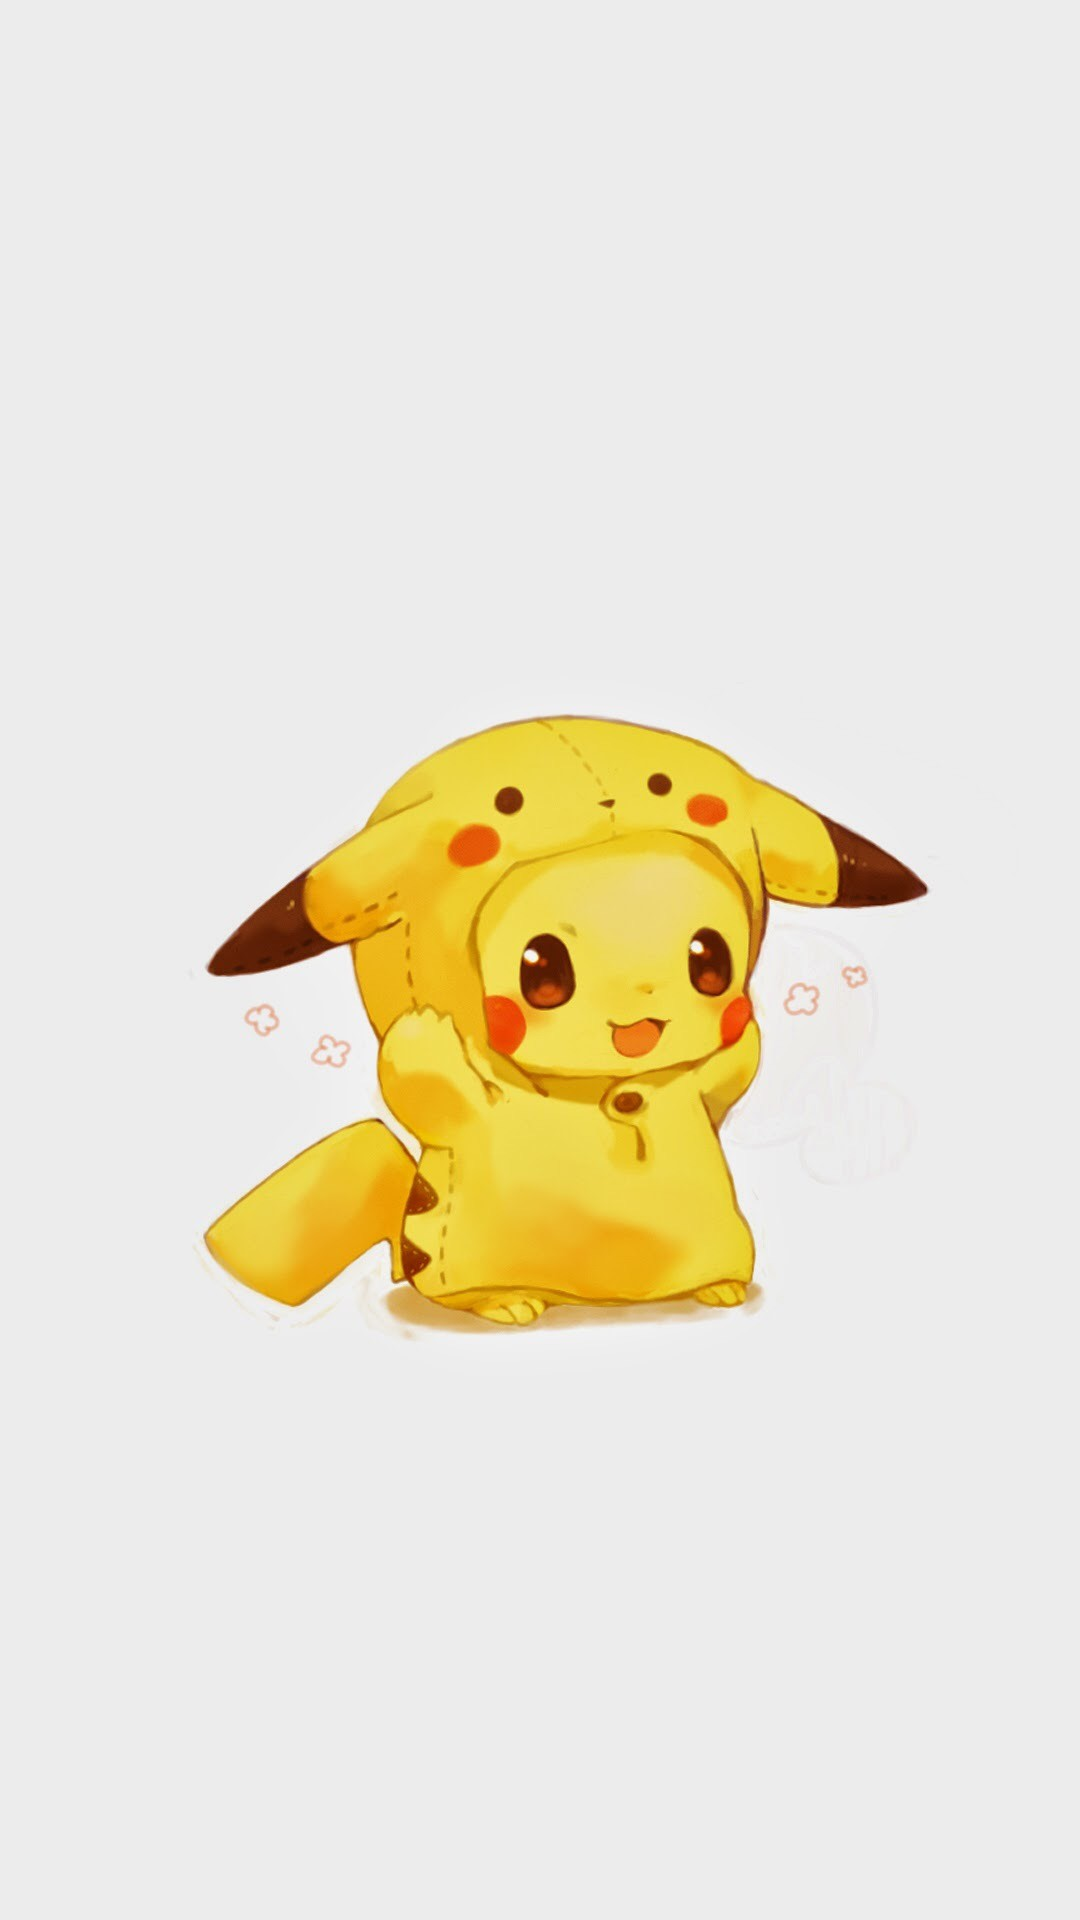 1080x1920 Tap image for more funny cute Pikachu wallpaper! Pikachu - @mobile9 |  Wallpapers for